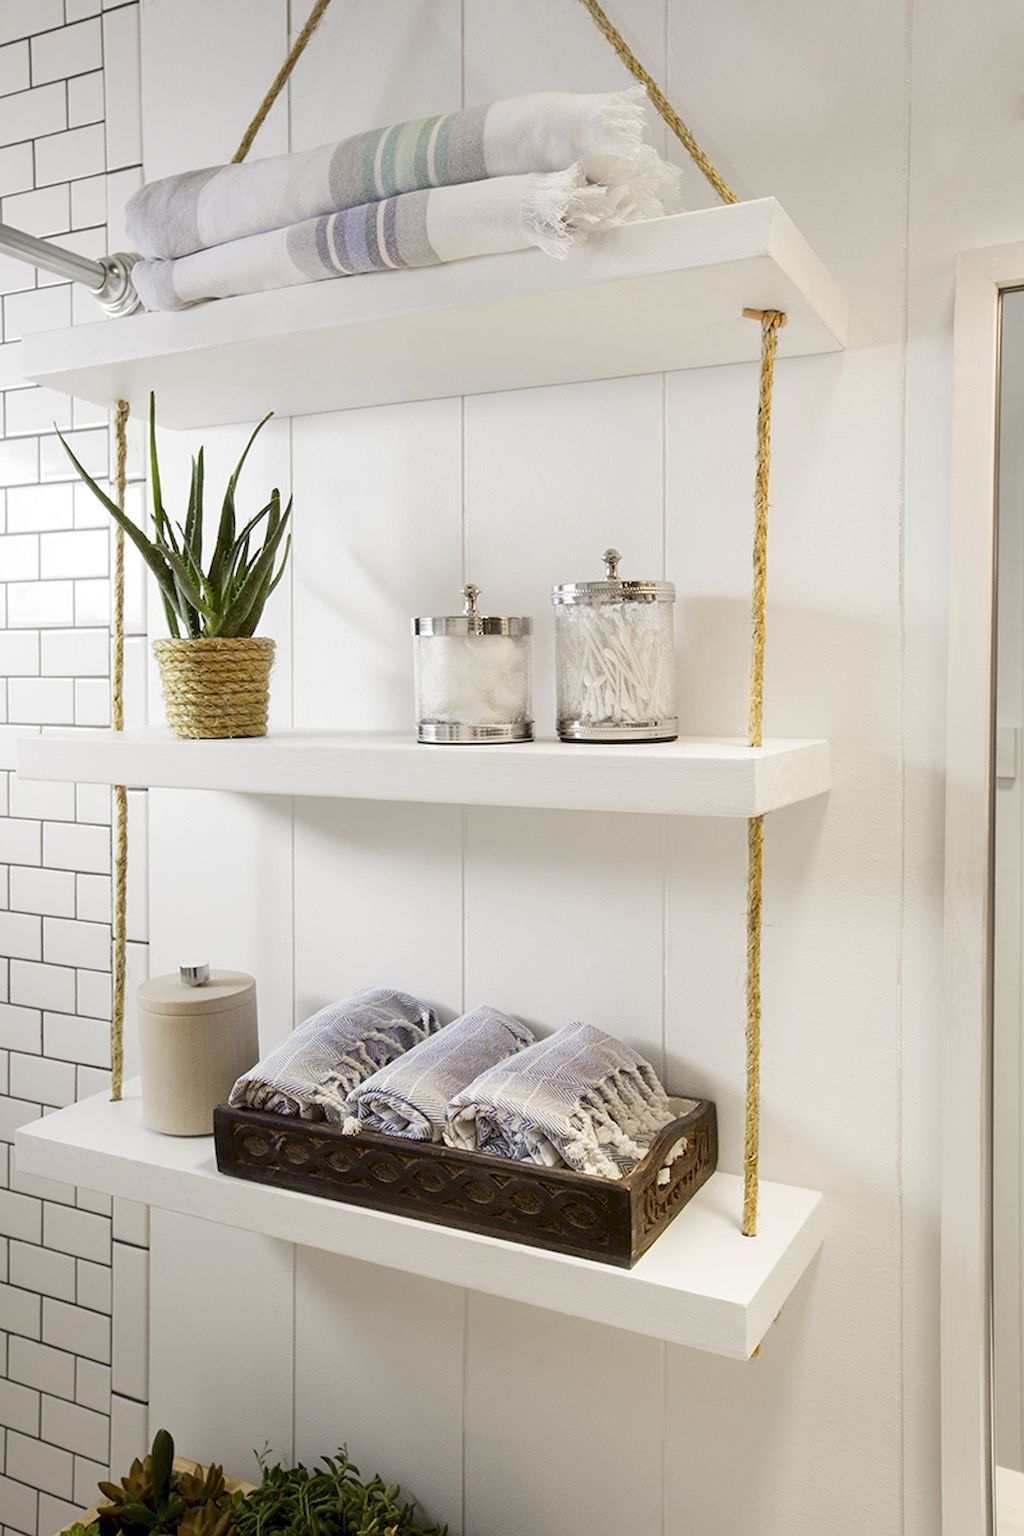 Cool 30 Rustic Bathroom Shelves Storage Ideas https://insidecorate ...